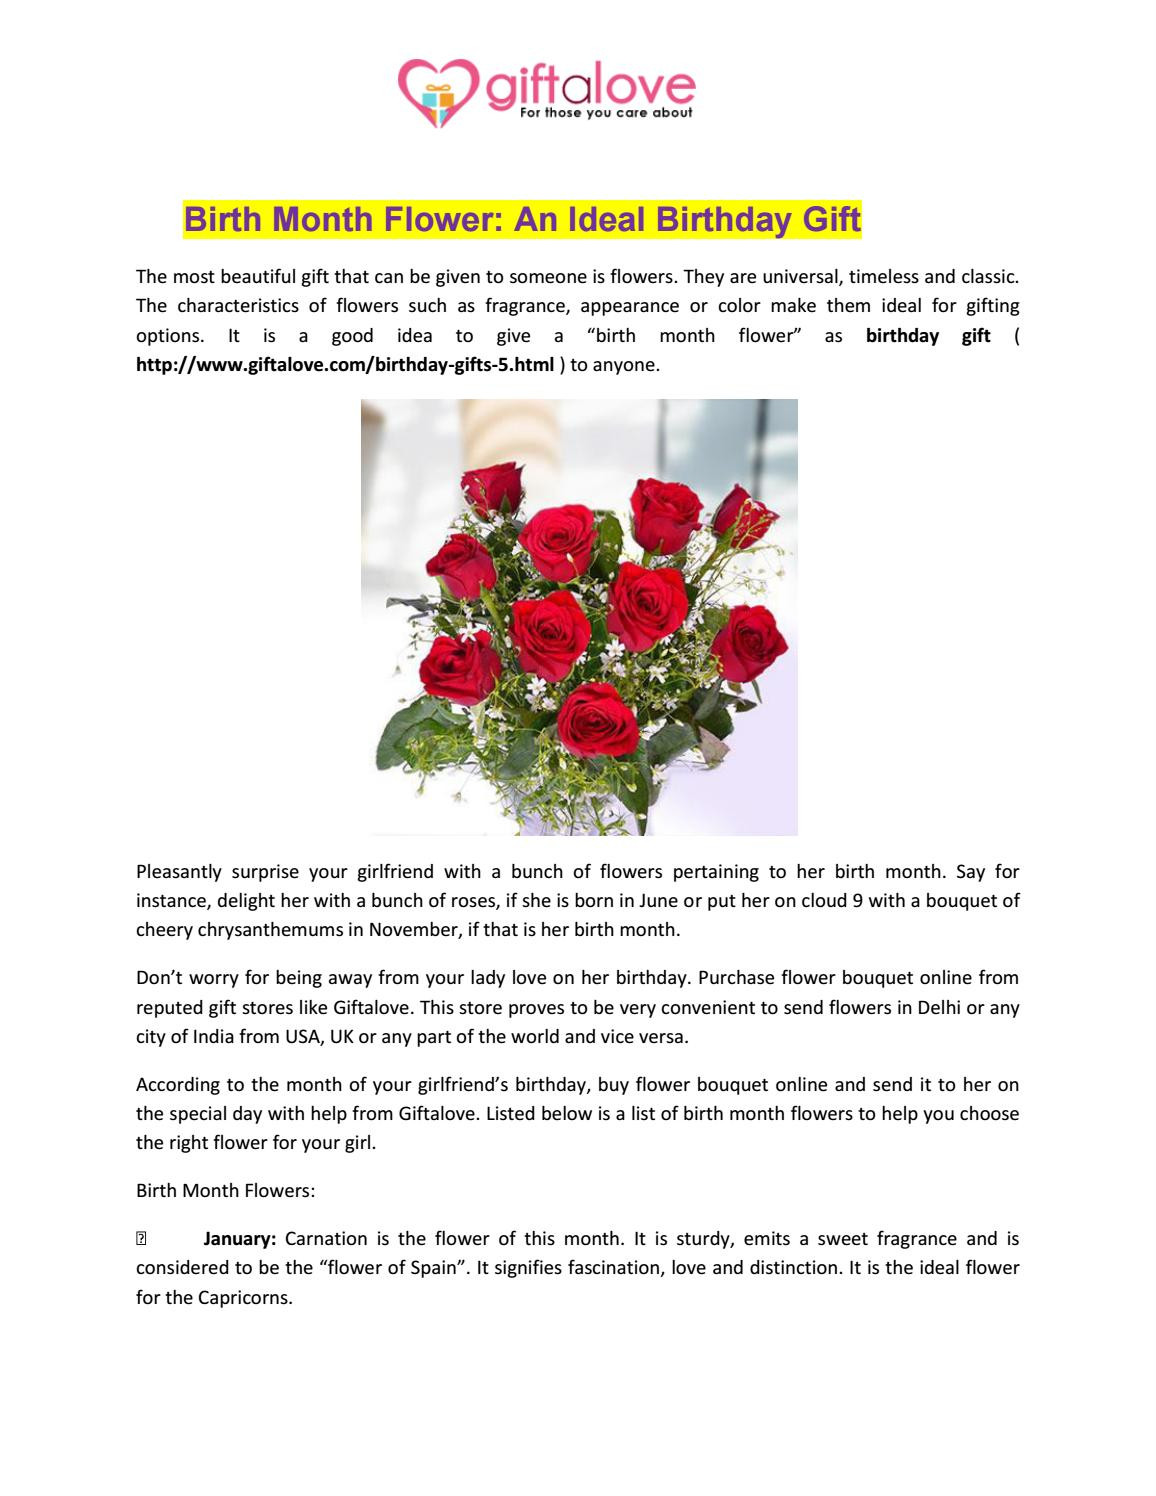 Birth Month Flower An Ideal Birthday Gift By GiftaLove